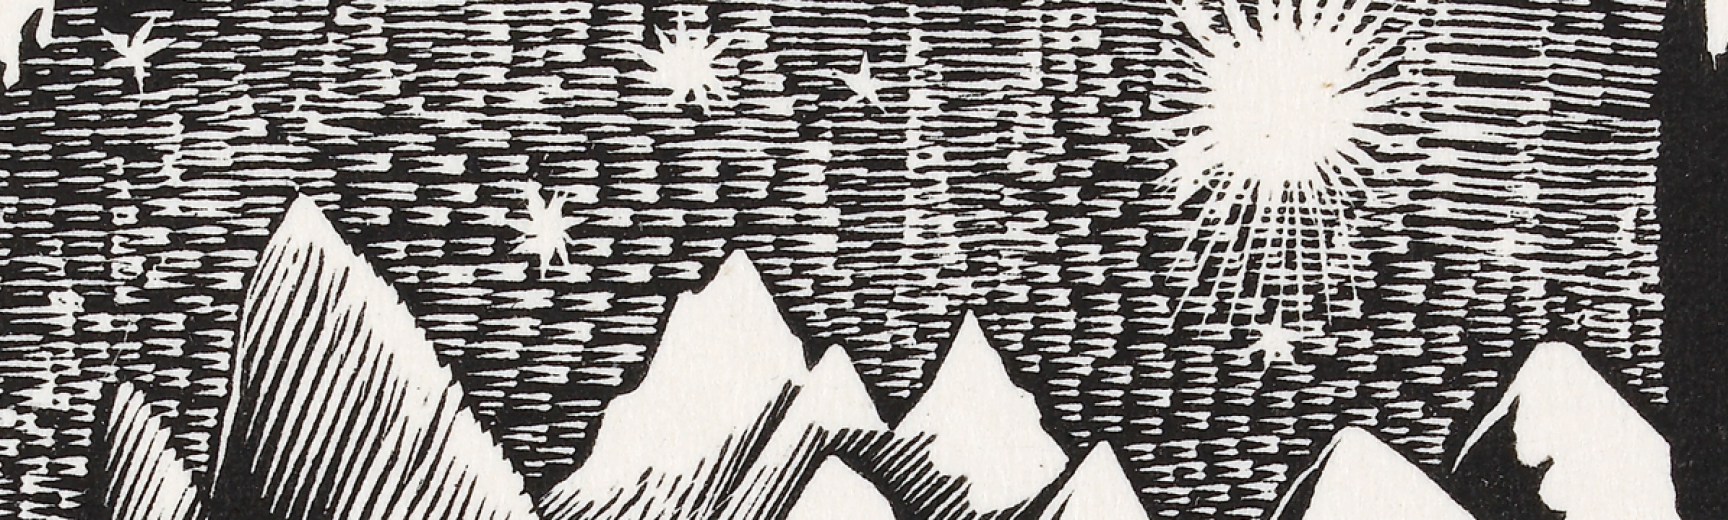 Ravilious Starry Sky Engraving